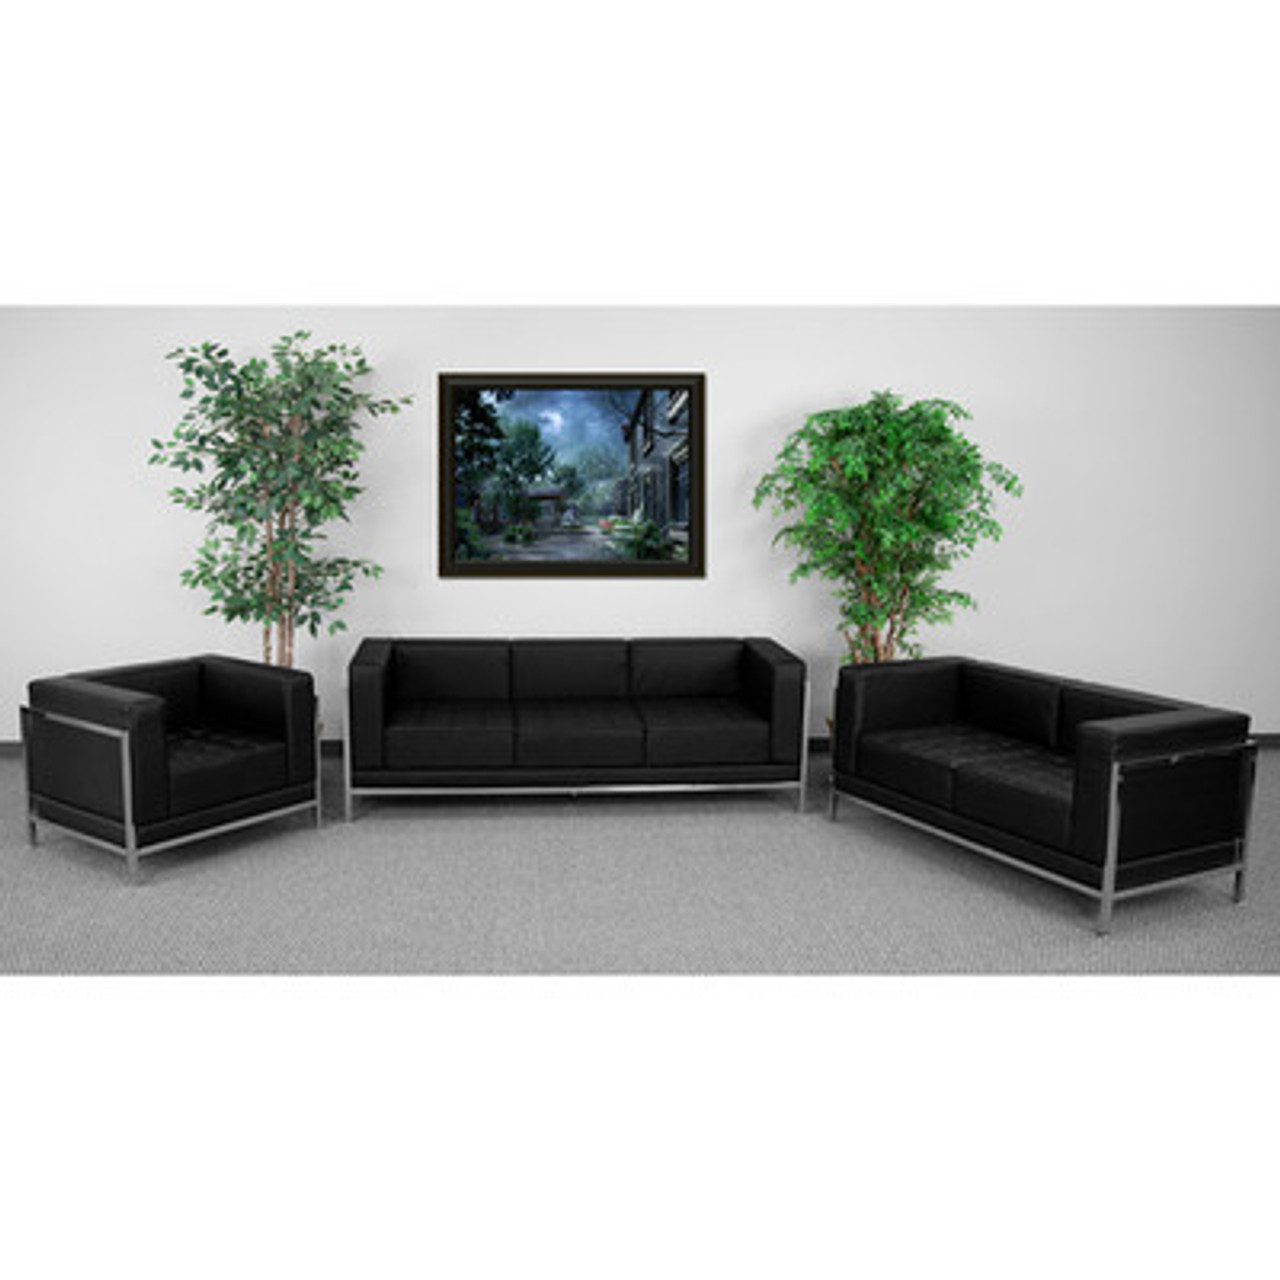 3pc Modern Leather Office Reception Sofa Set, FF-0433-12-S2